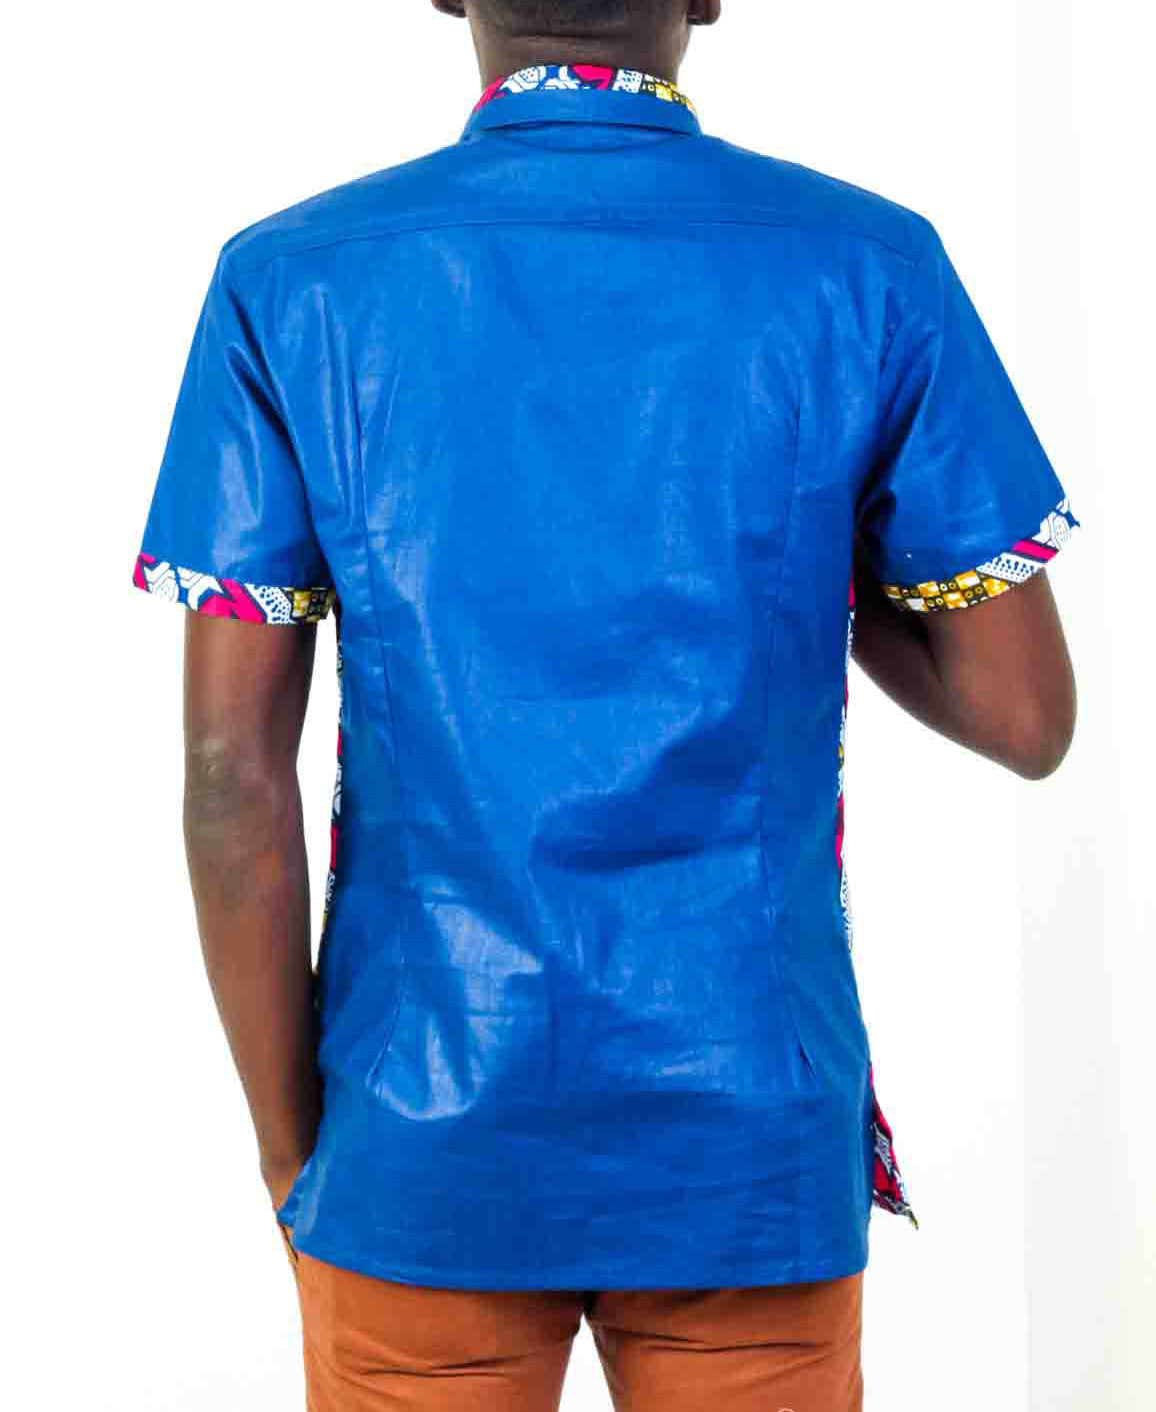 Mens Short Sleeve Blue African print shirt-Kuna - OHEMA OHENE AFRICAN INSPIRED FASHION  - 2